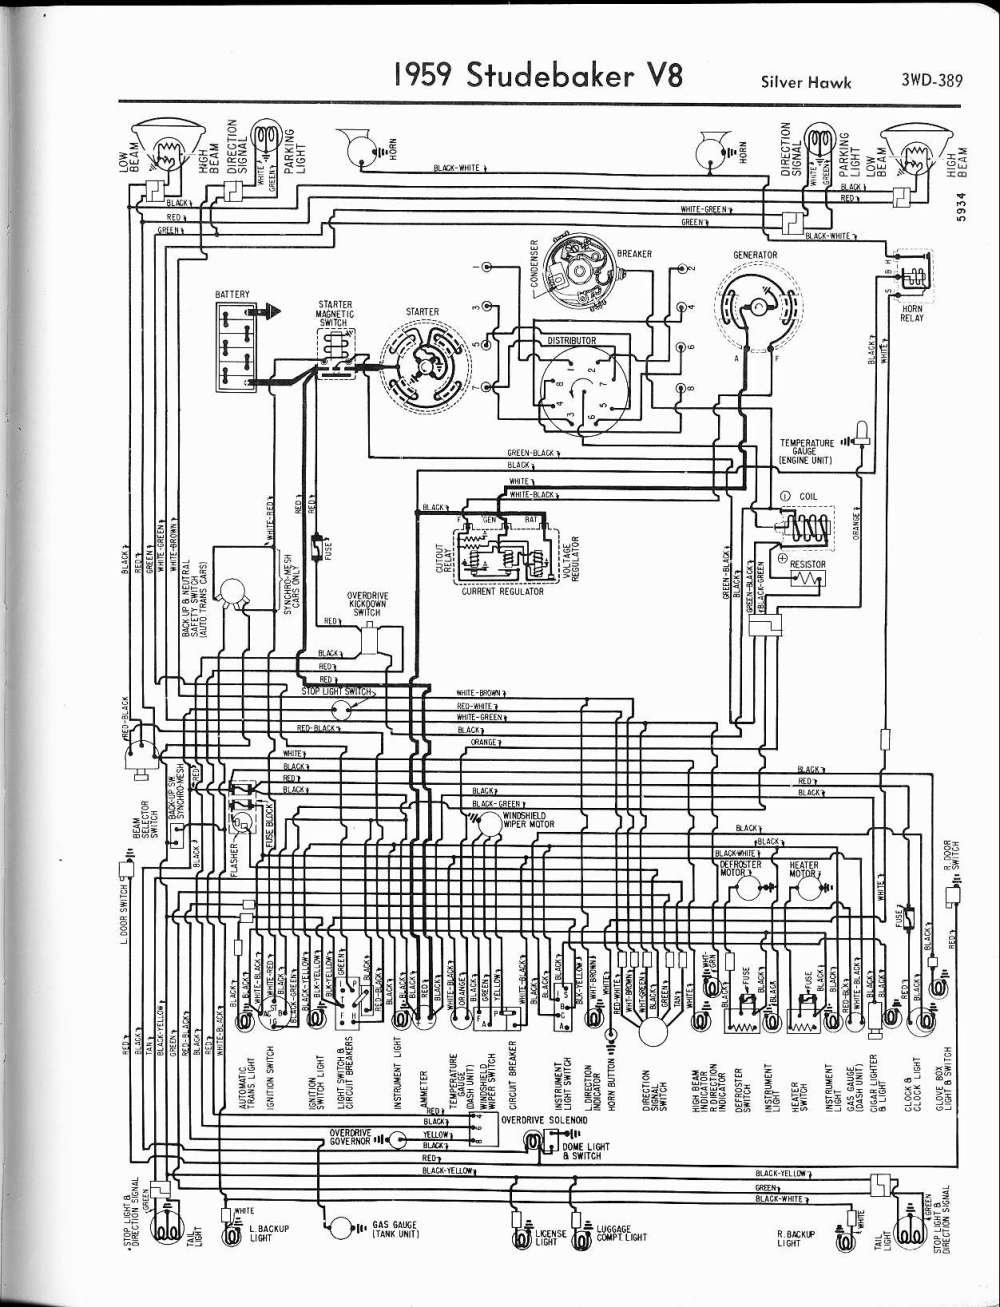 medium resolution of wiring diagram for 1960 studebaker v8 wiring diagram navstudebaker wiring diagrams the old car manual project